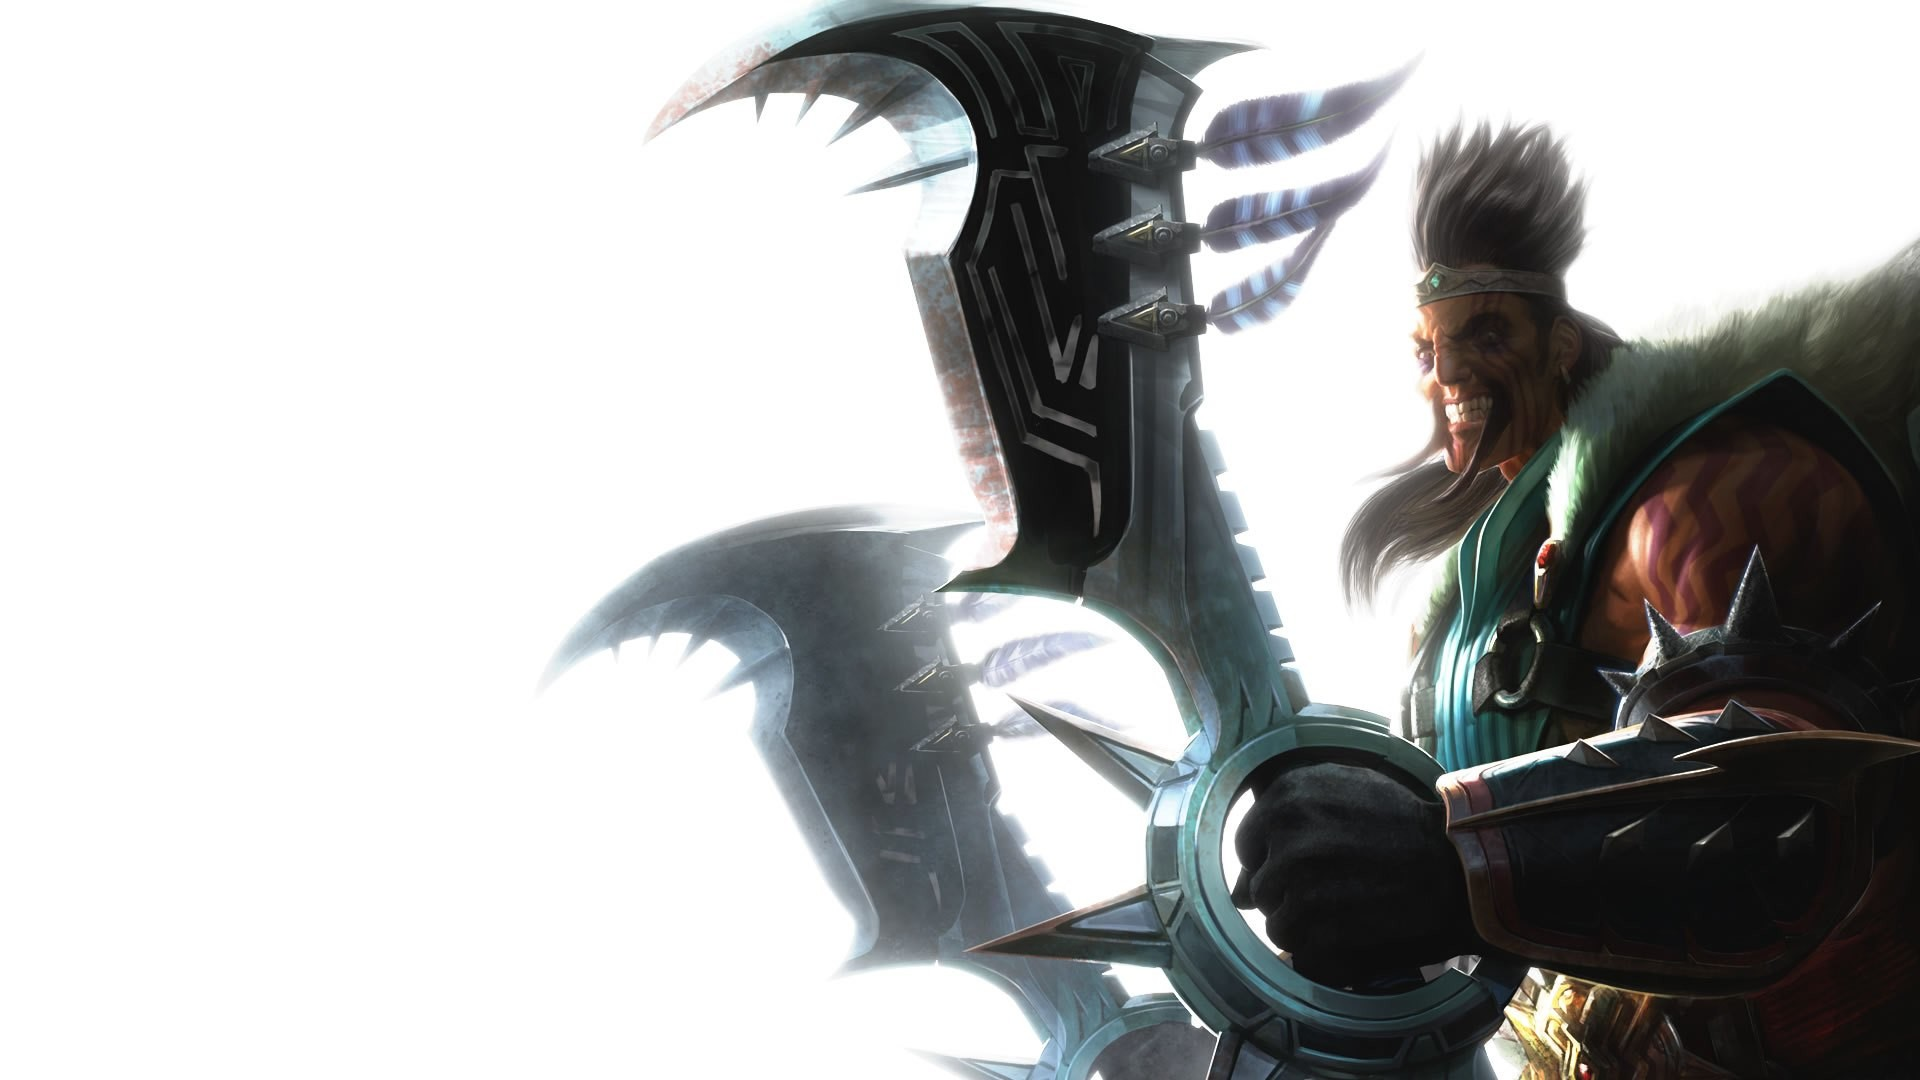 1920x1080 League-of-Legends-Draven-And-Axes-Wallpaper